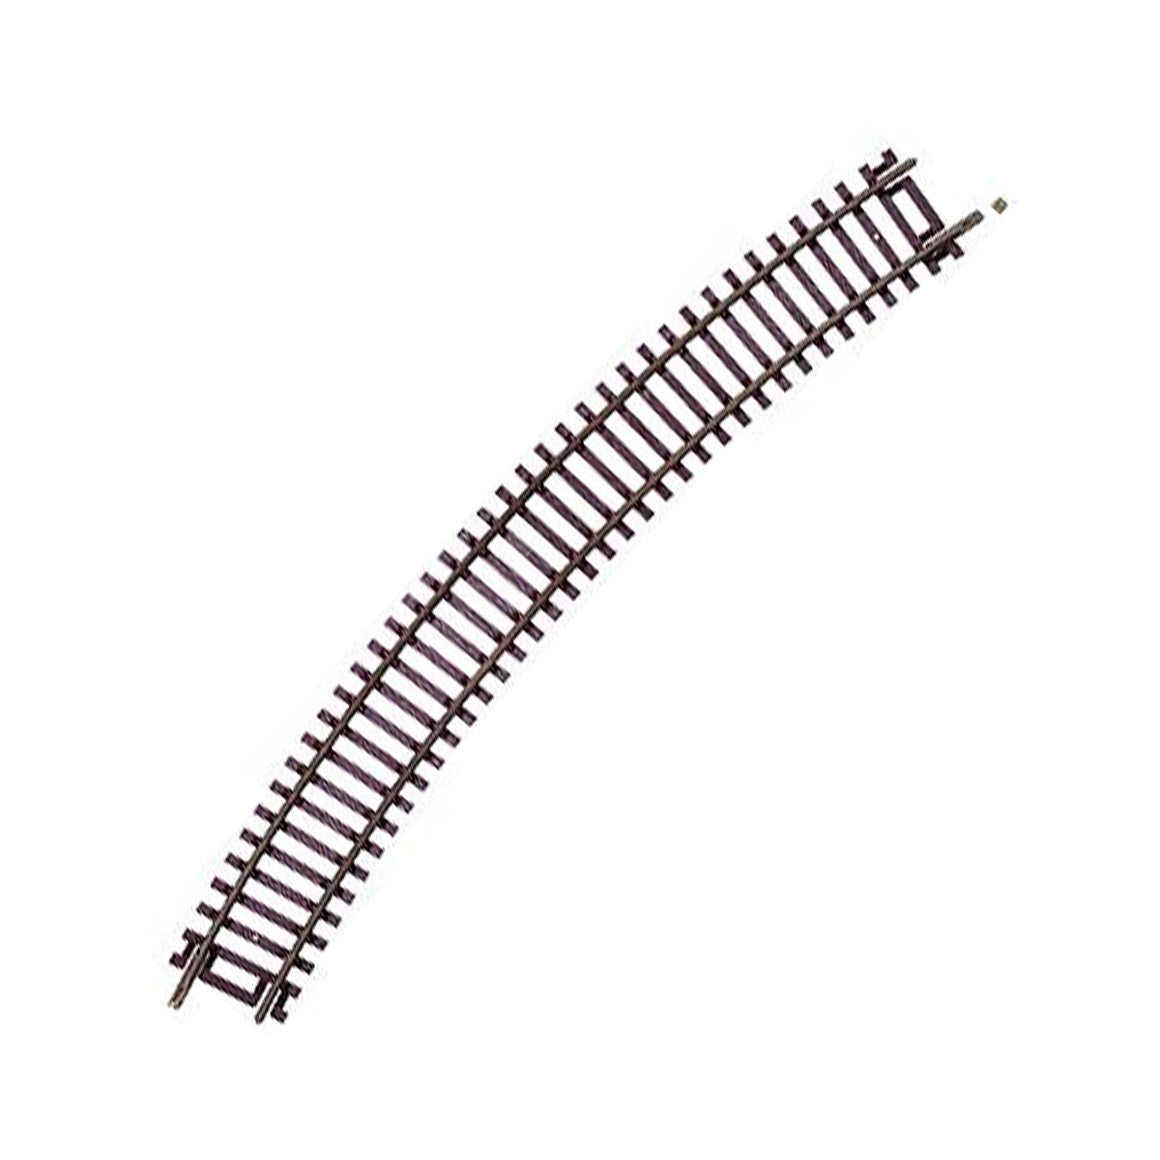 "HO Scale: Code 83 Snap Track - 18"" Radius Curves"